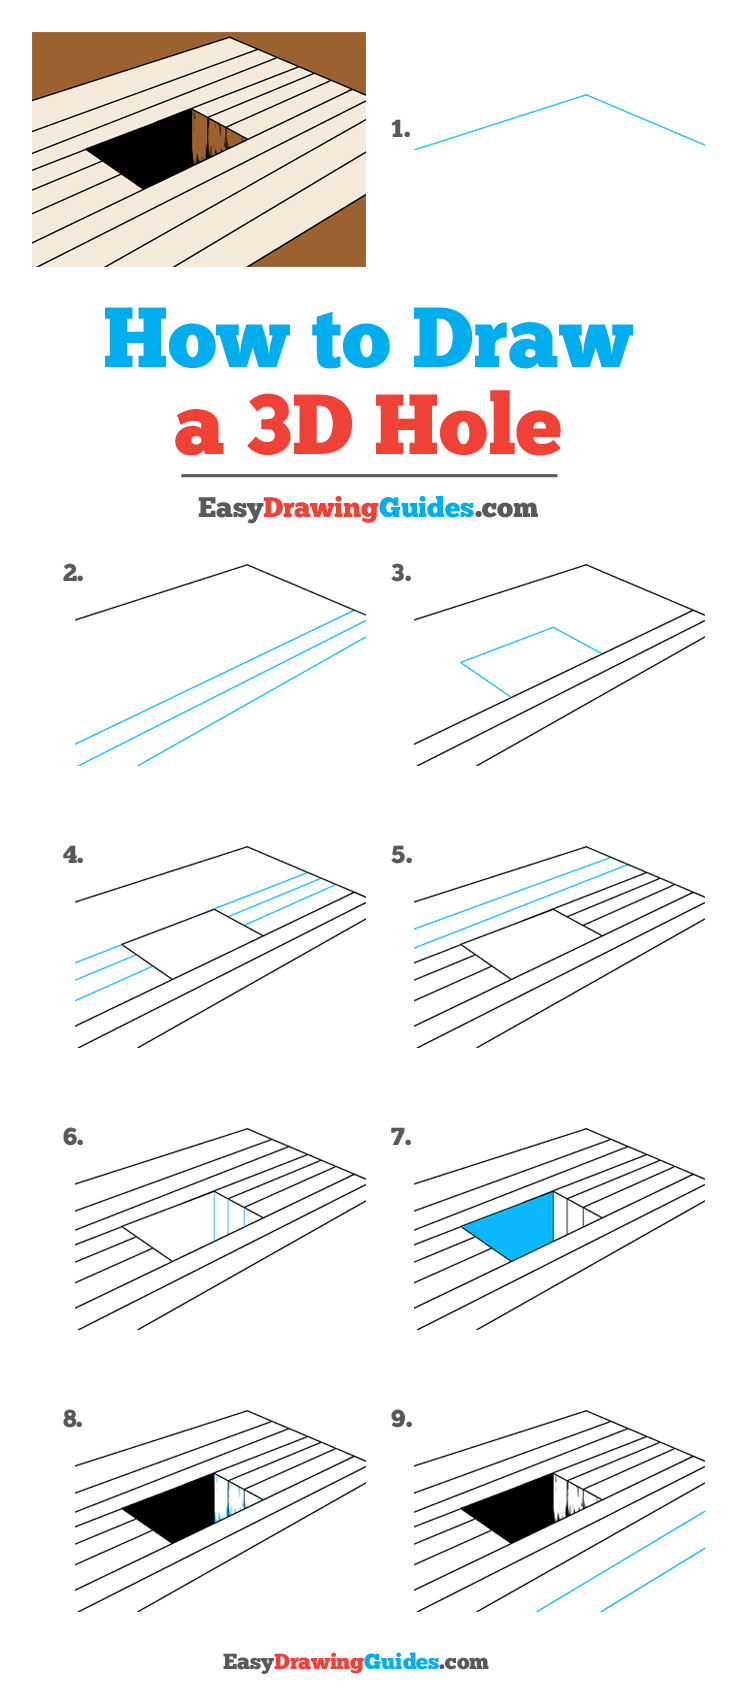 How to Draw 3D Hole